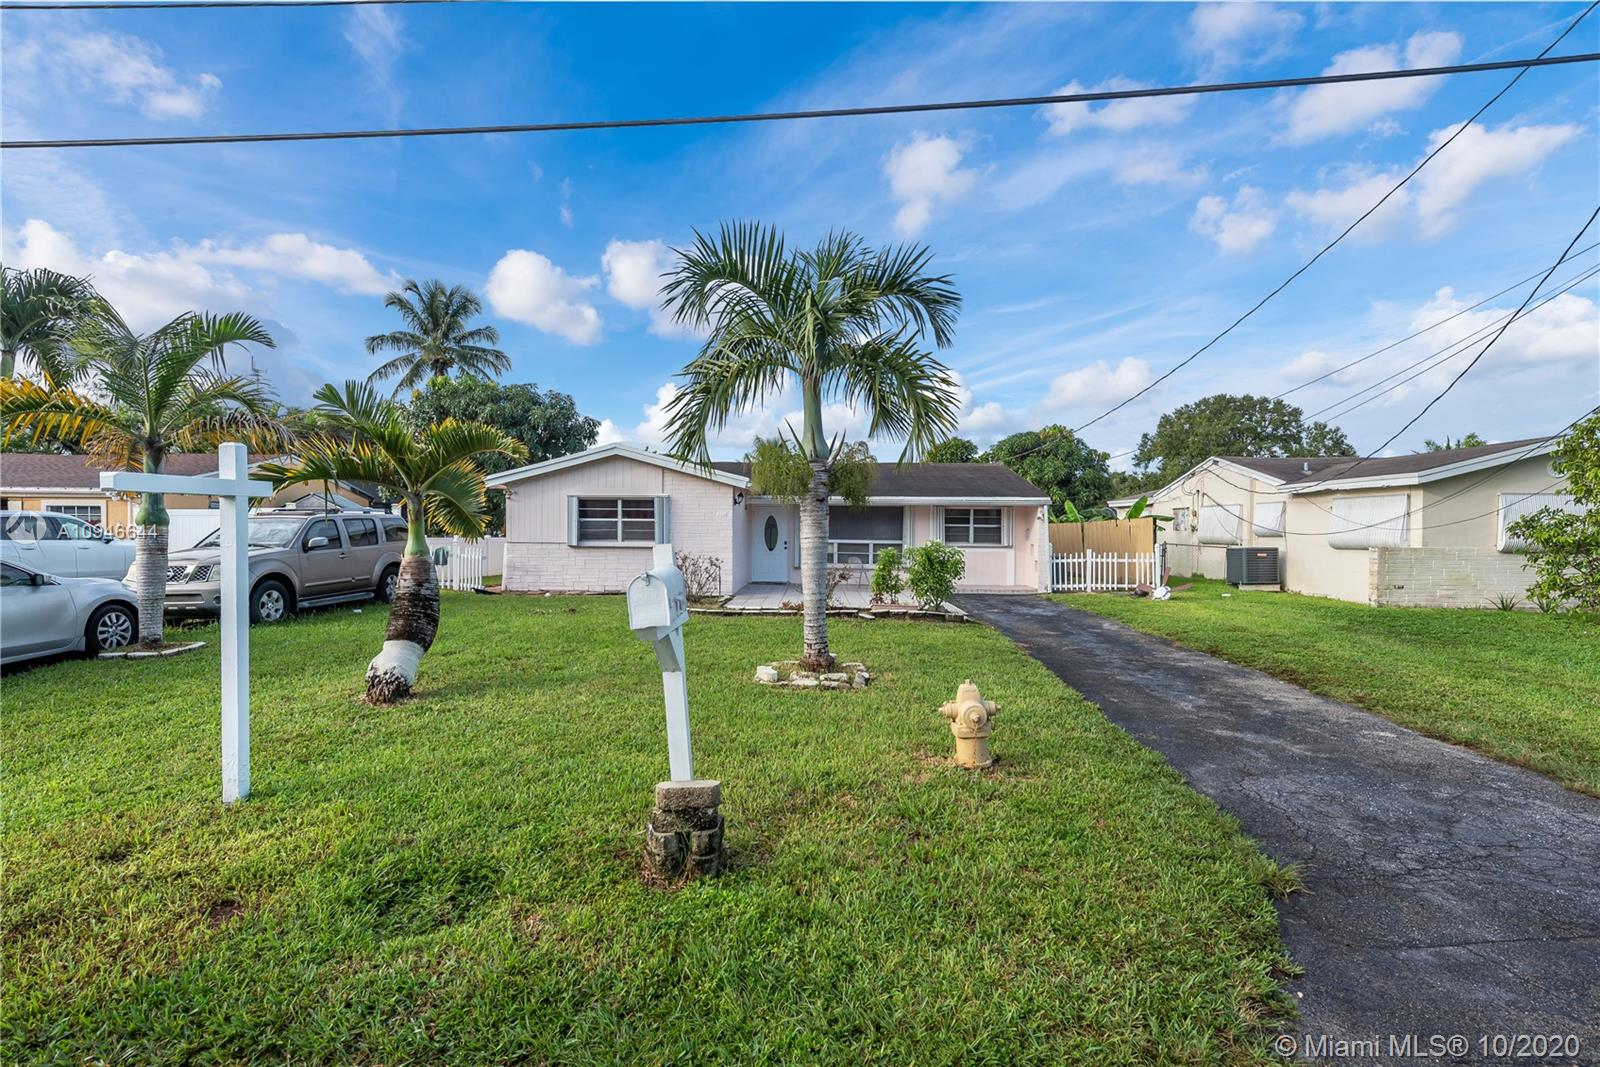 2718 SW 66th te, Miramar, Florida 33023, 3 Bedrooms Bedrooms, ,2 BathroomsBathrooms,Residential,For Sale,2718 SW 66th te,A10946644